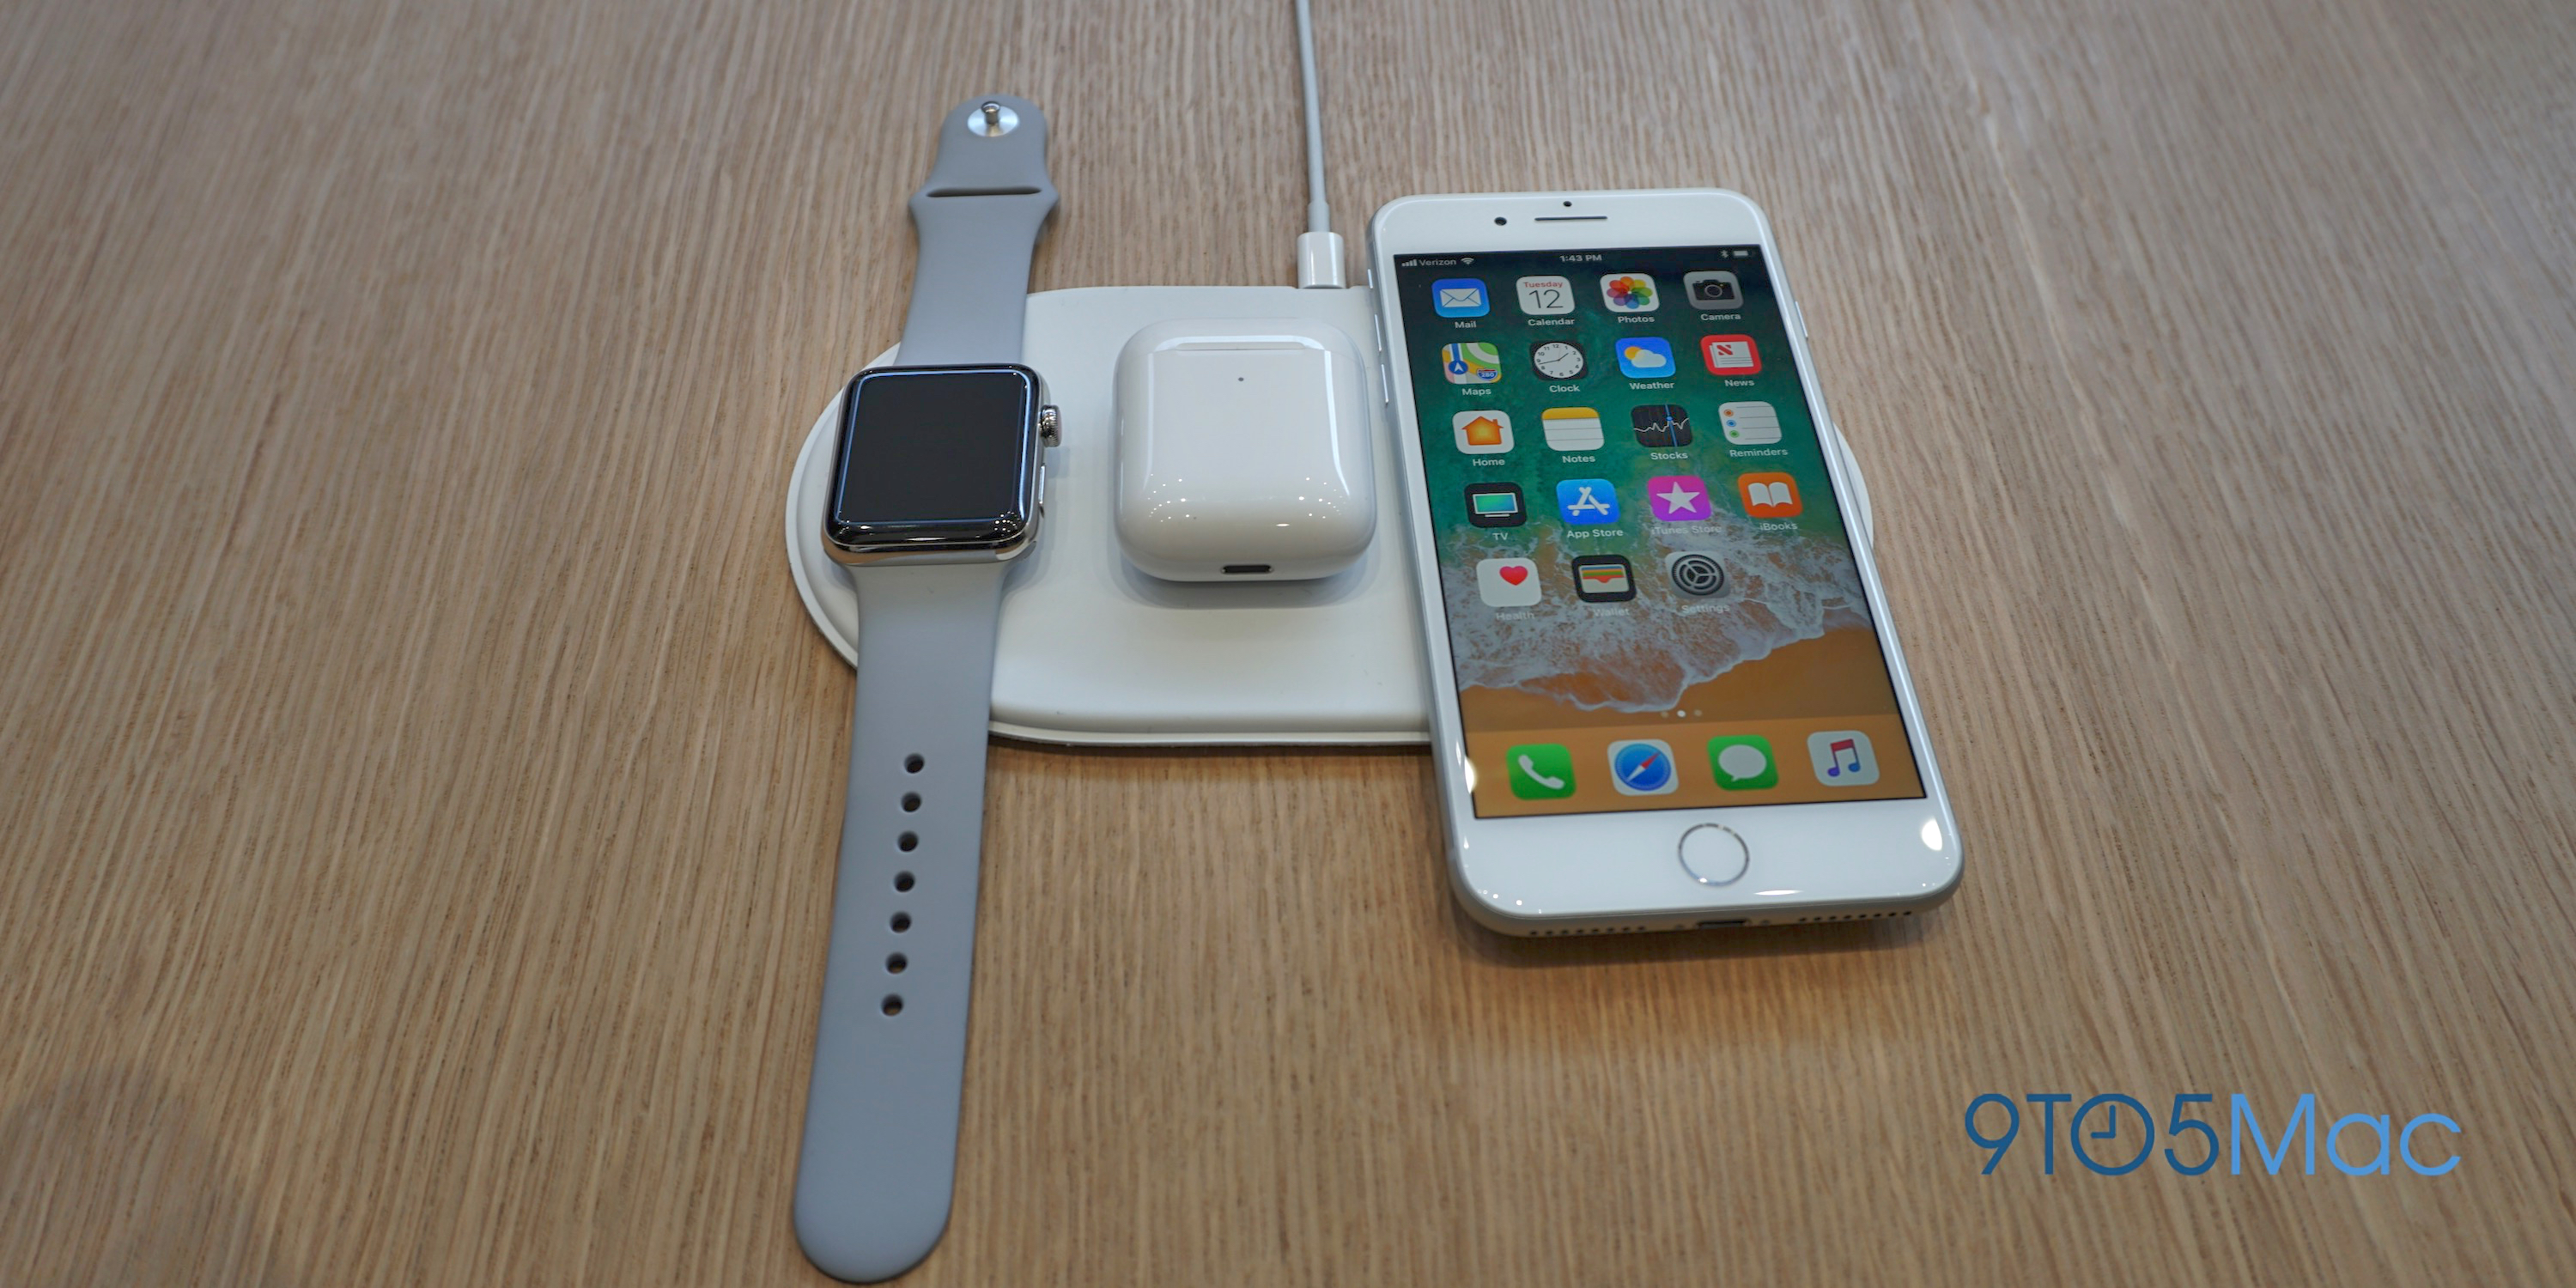 Apple Airpods Wireless Case Wire Center Repo Projects F Fsrledseries Images Fsr Light Breadboardjpg Charging Will Be Sold Separately Work With Rh 9to5mac Com Charger